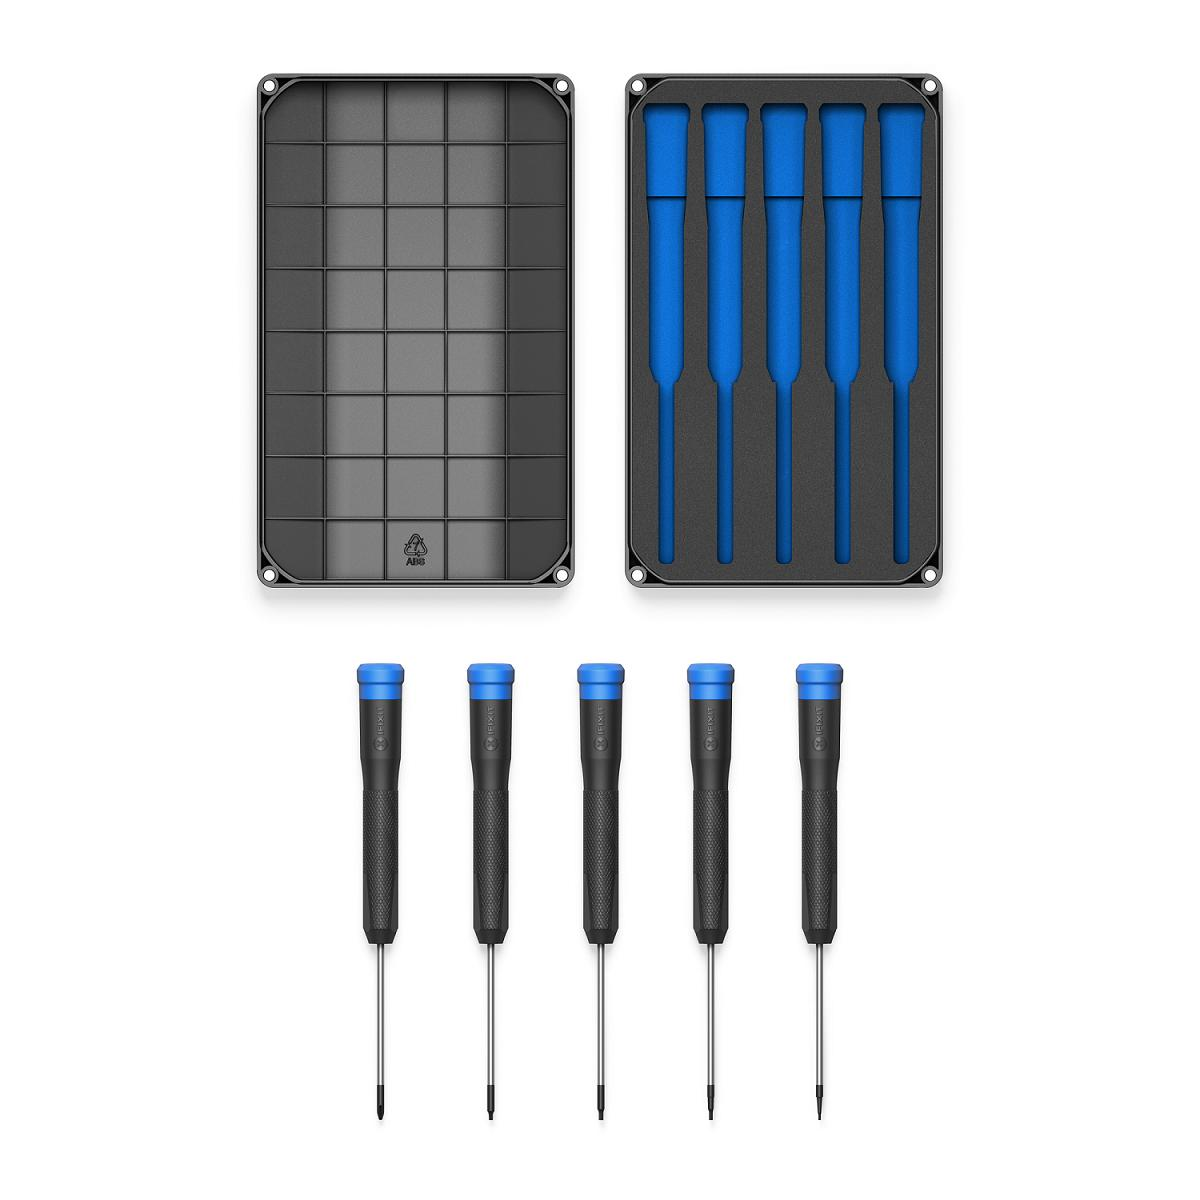 《在庫あり》iFixit Pro Tech Screwdriver Set 5-piece Specialty [IF145-397-1]